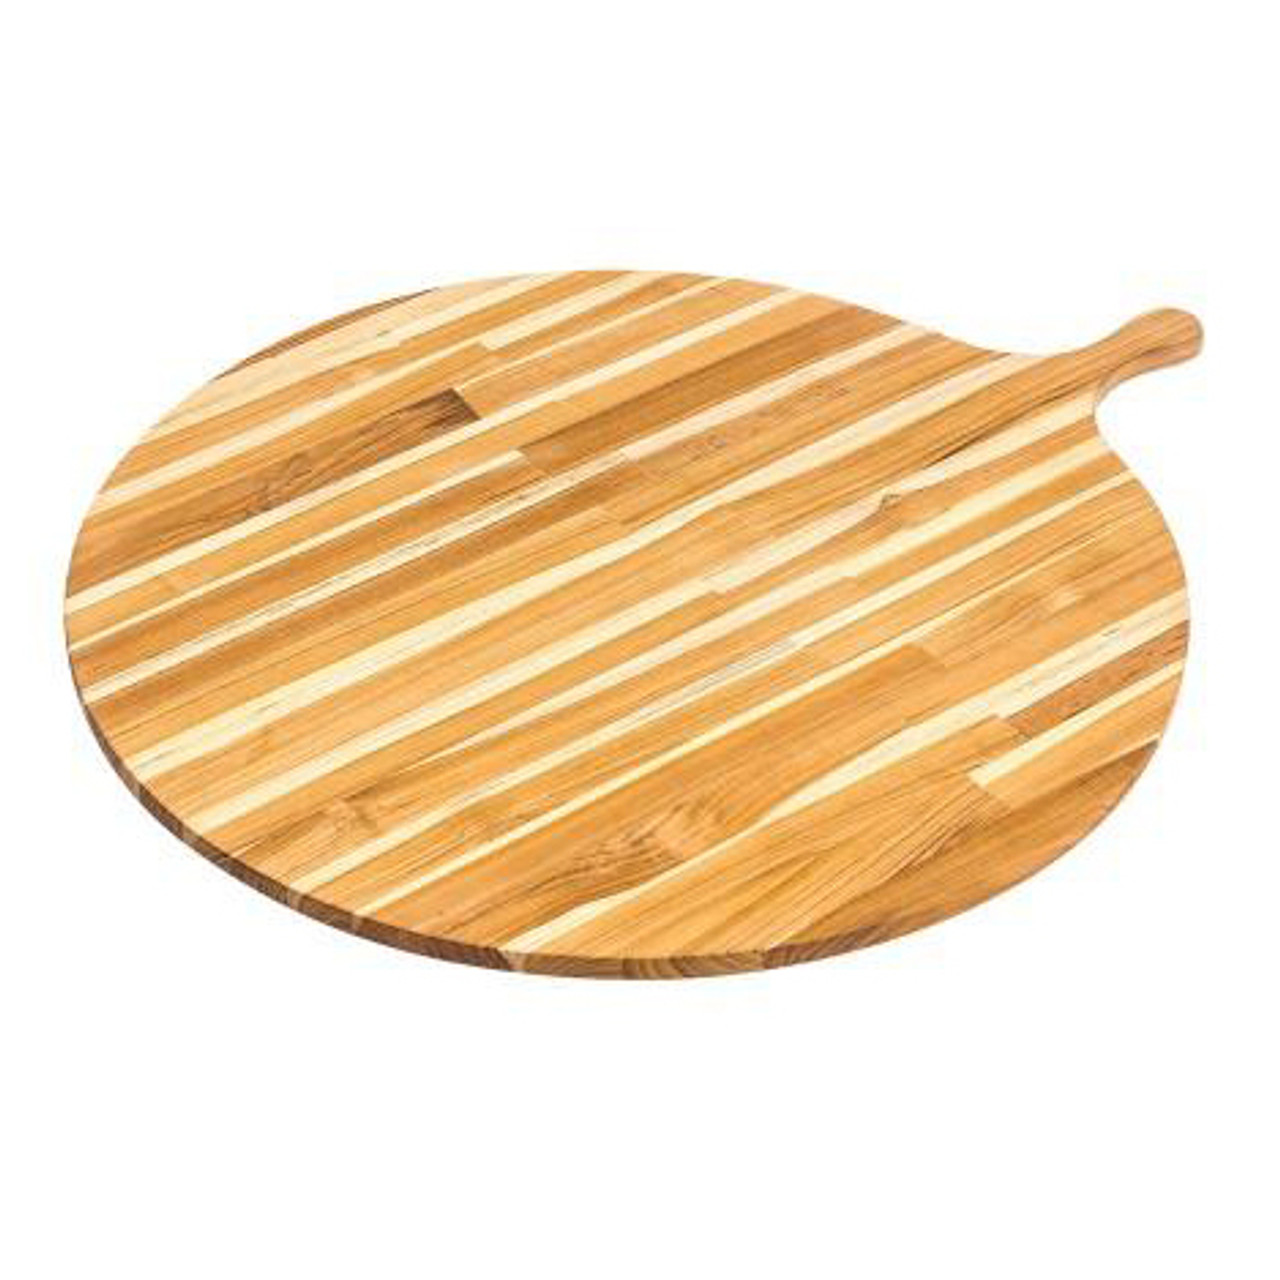 TEAKHAUS ATLAS SERVING BOARD MEDIUM 22X17